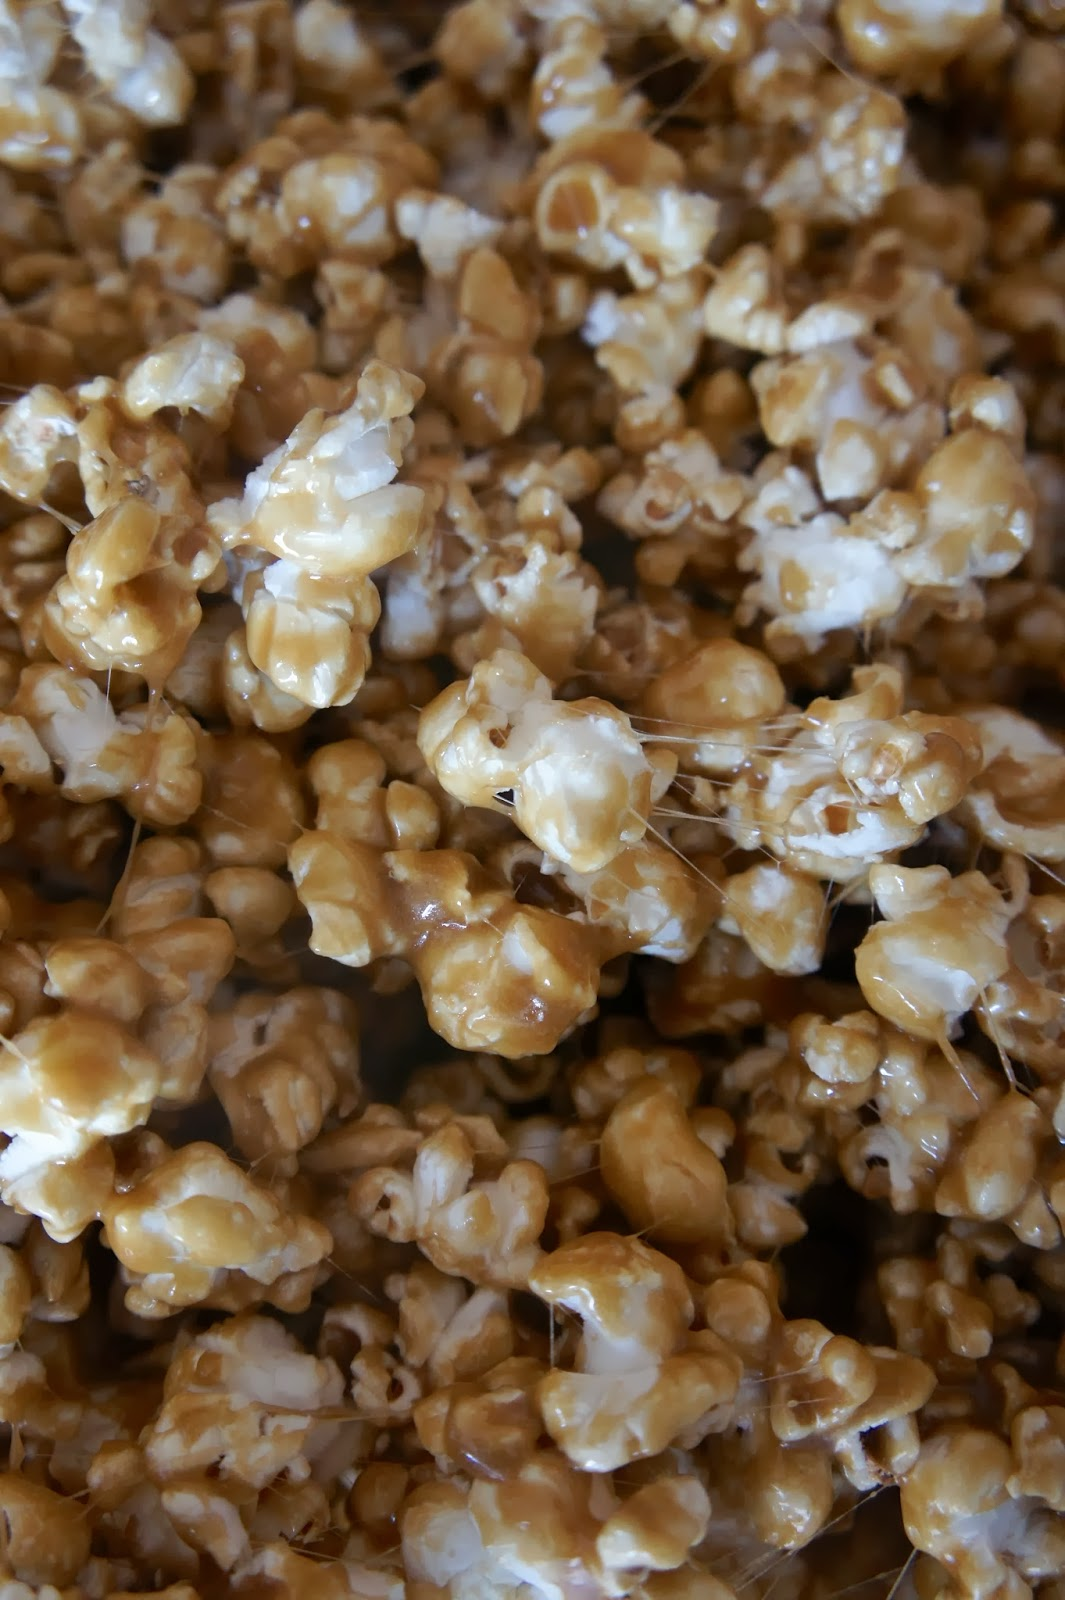 Savory Sweet and Satisfying: Caramel Marshmallow Popcorn